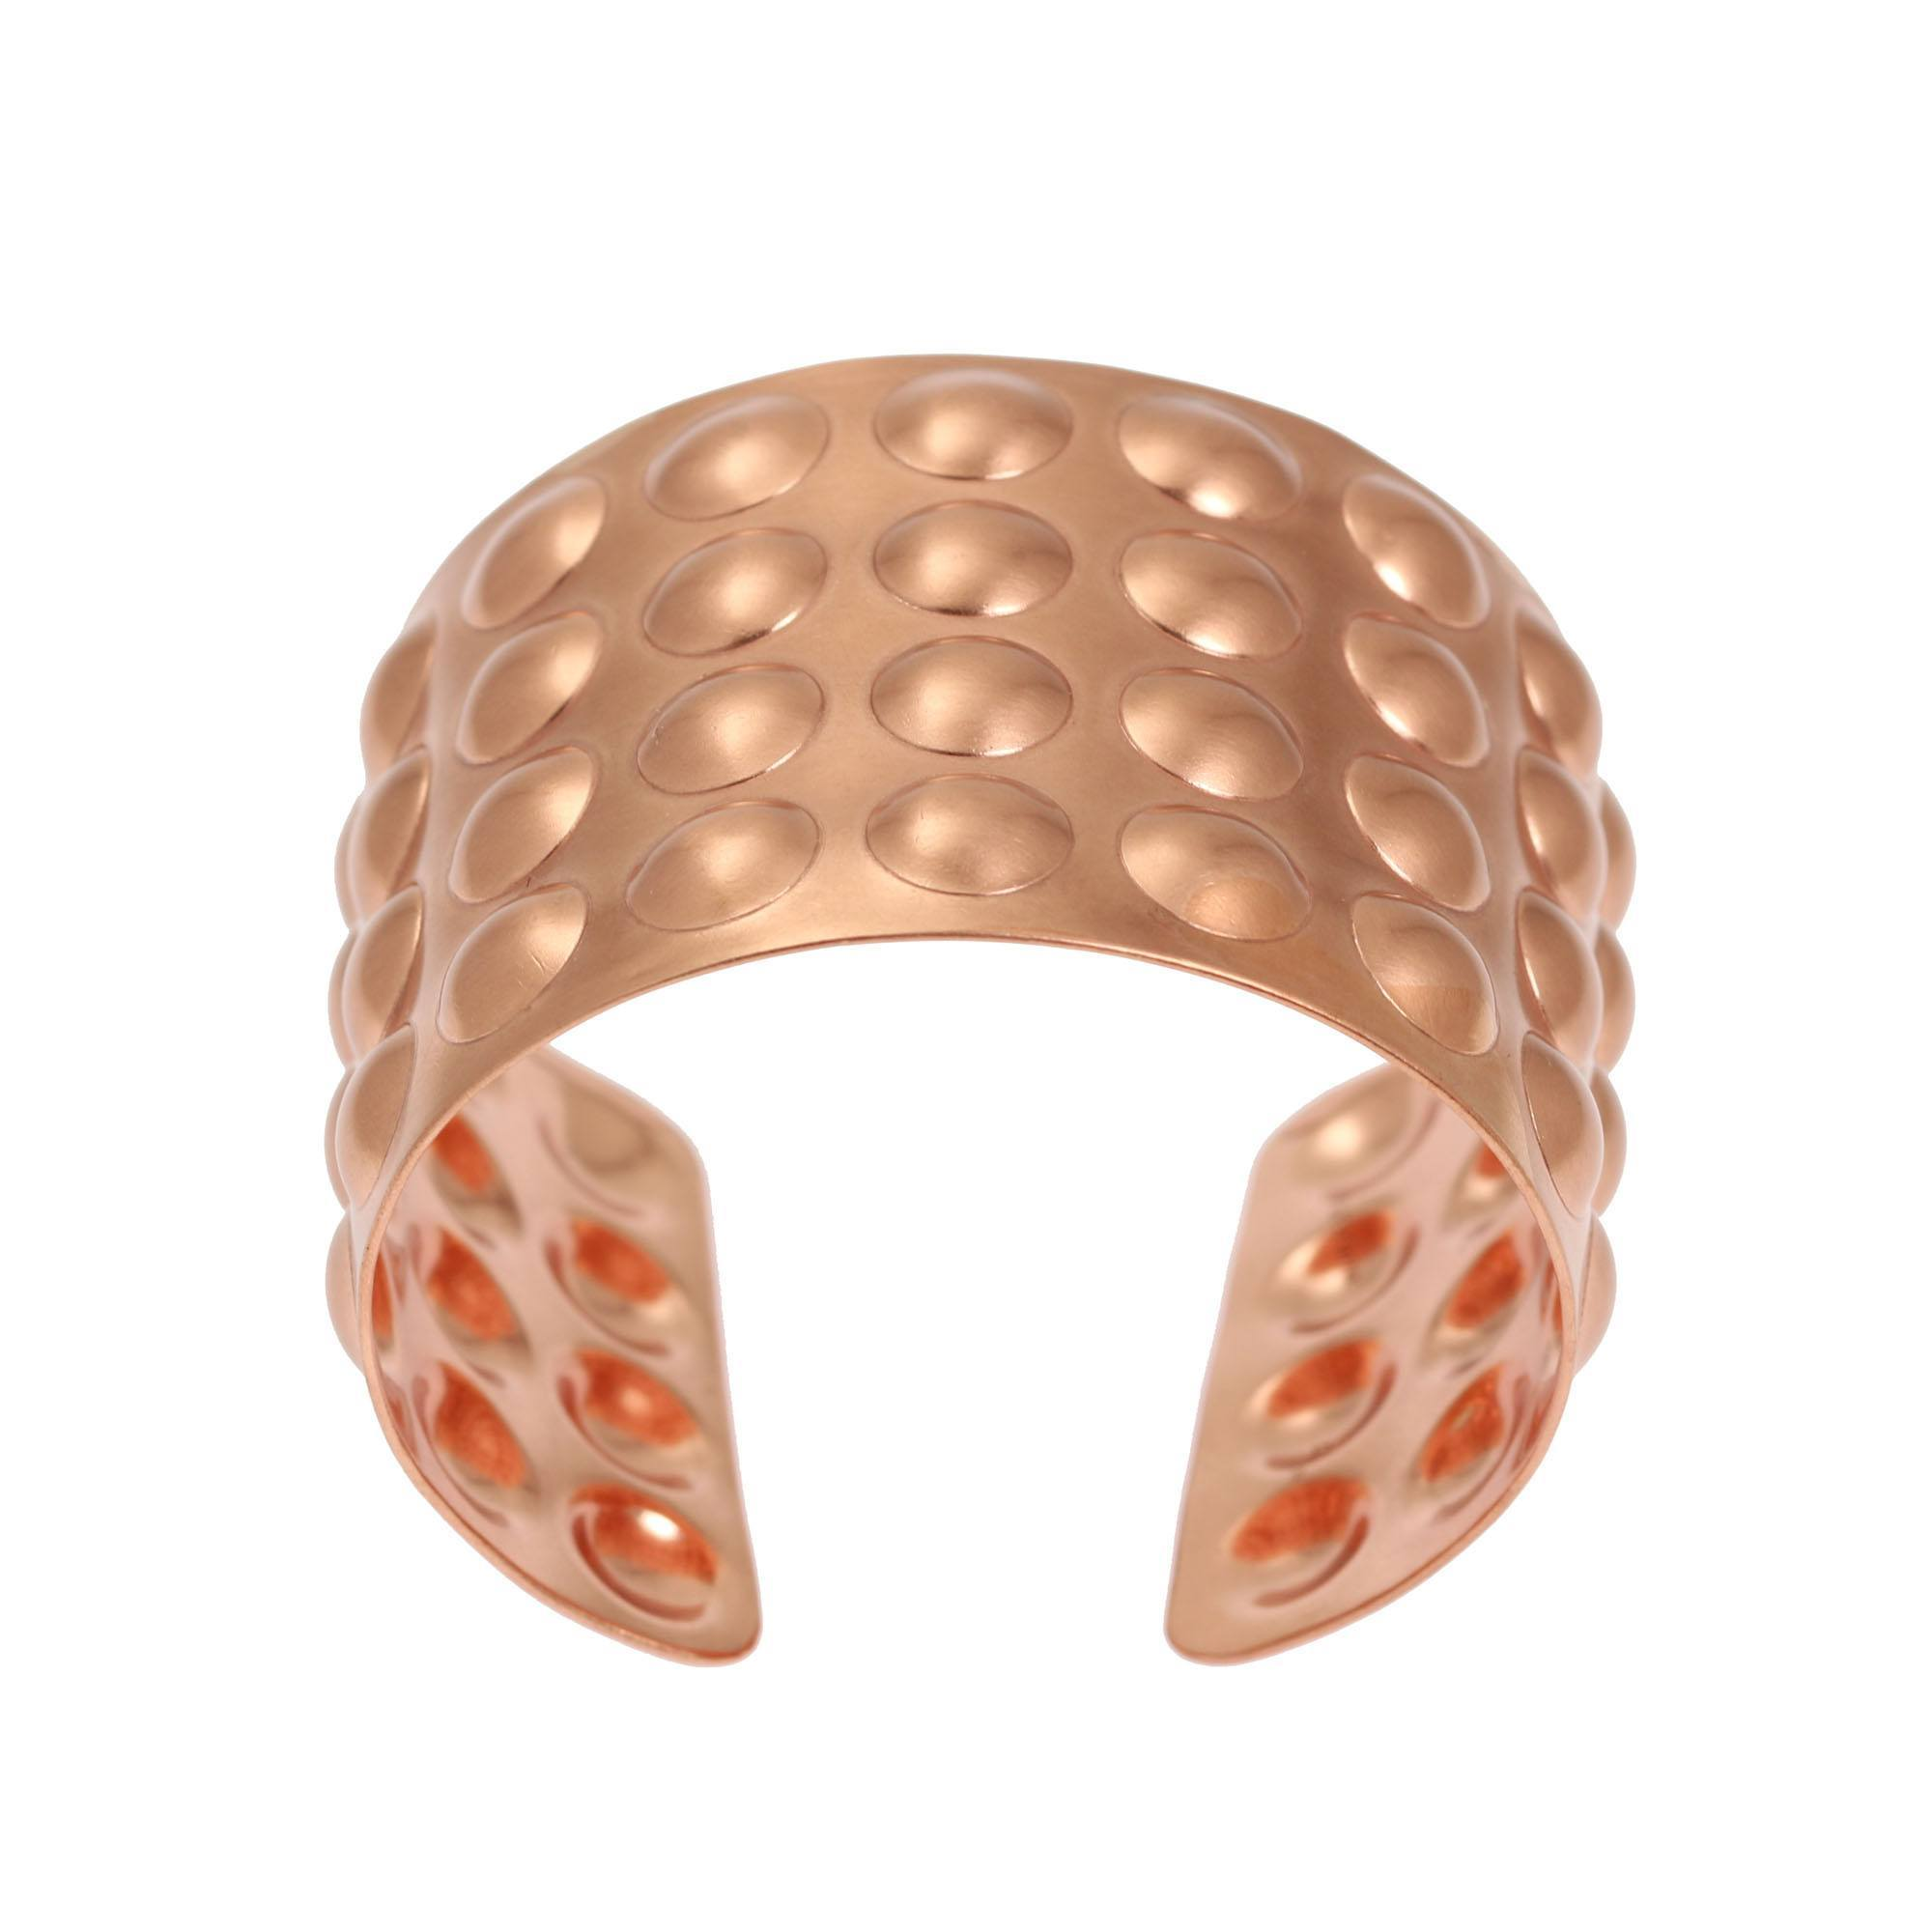 haywards collection explore coper kong bespoke rings jewellery of hong our img